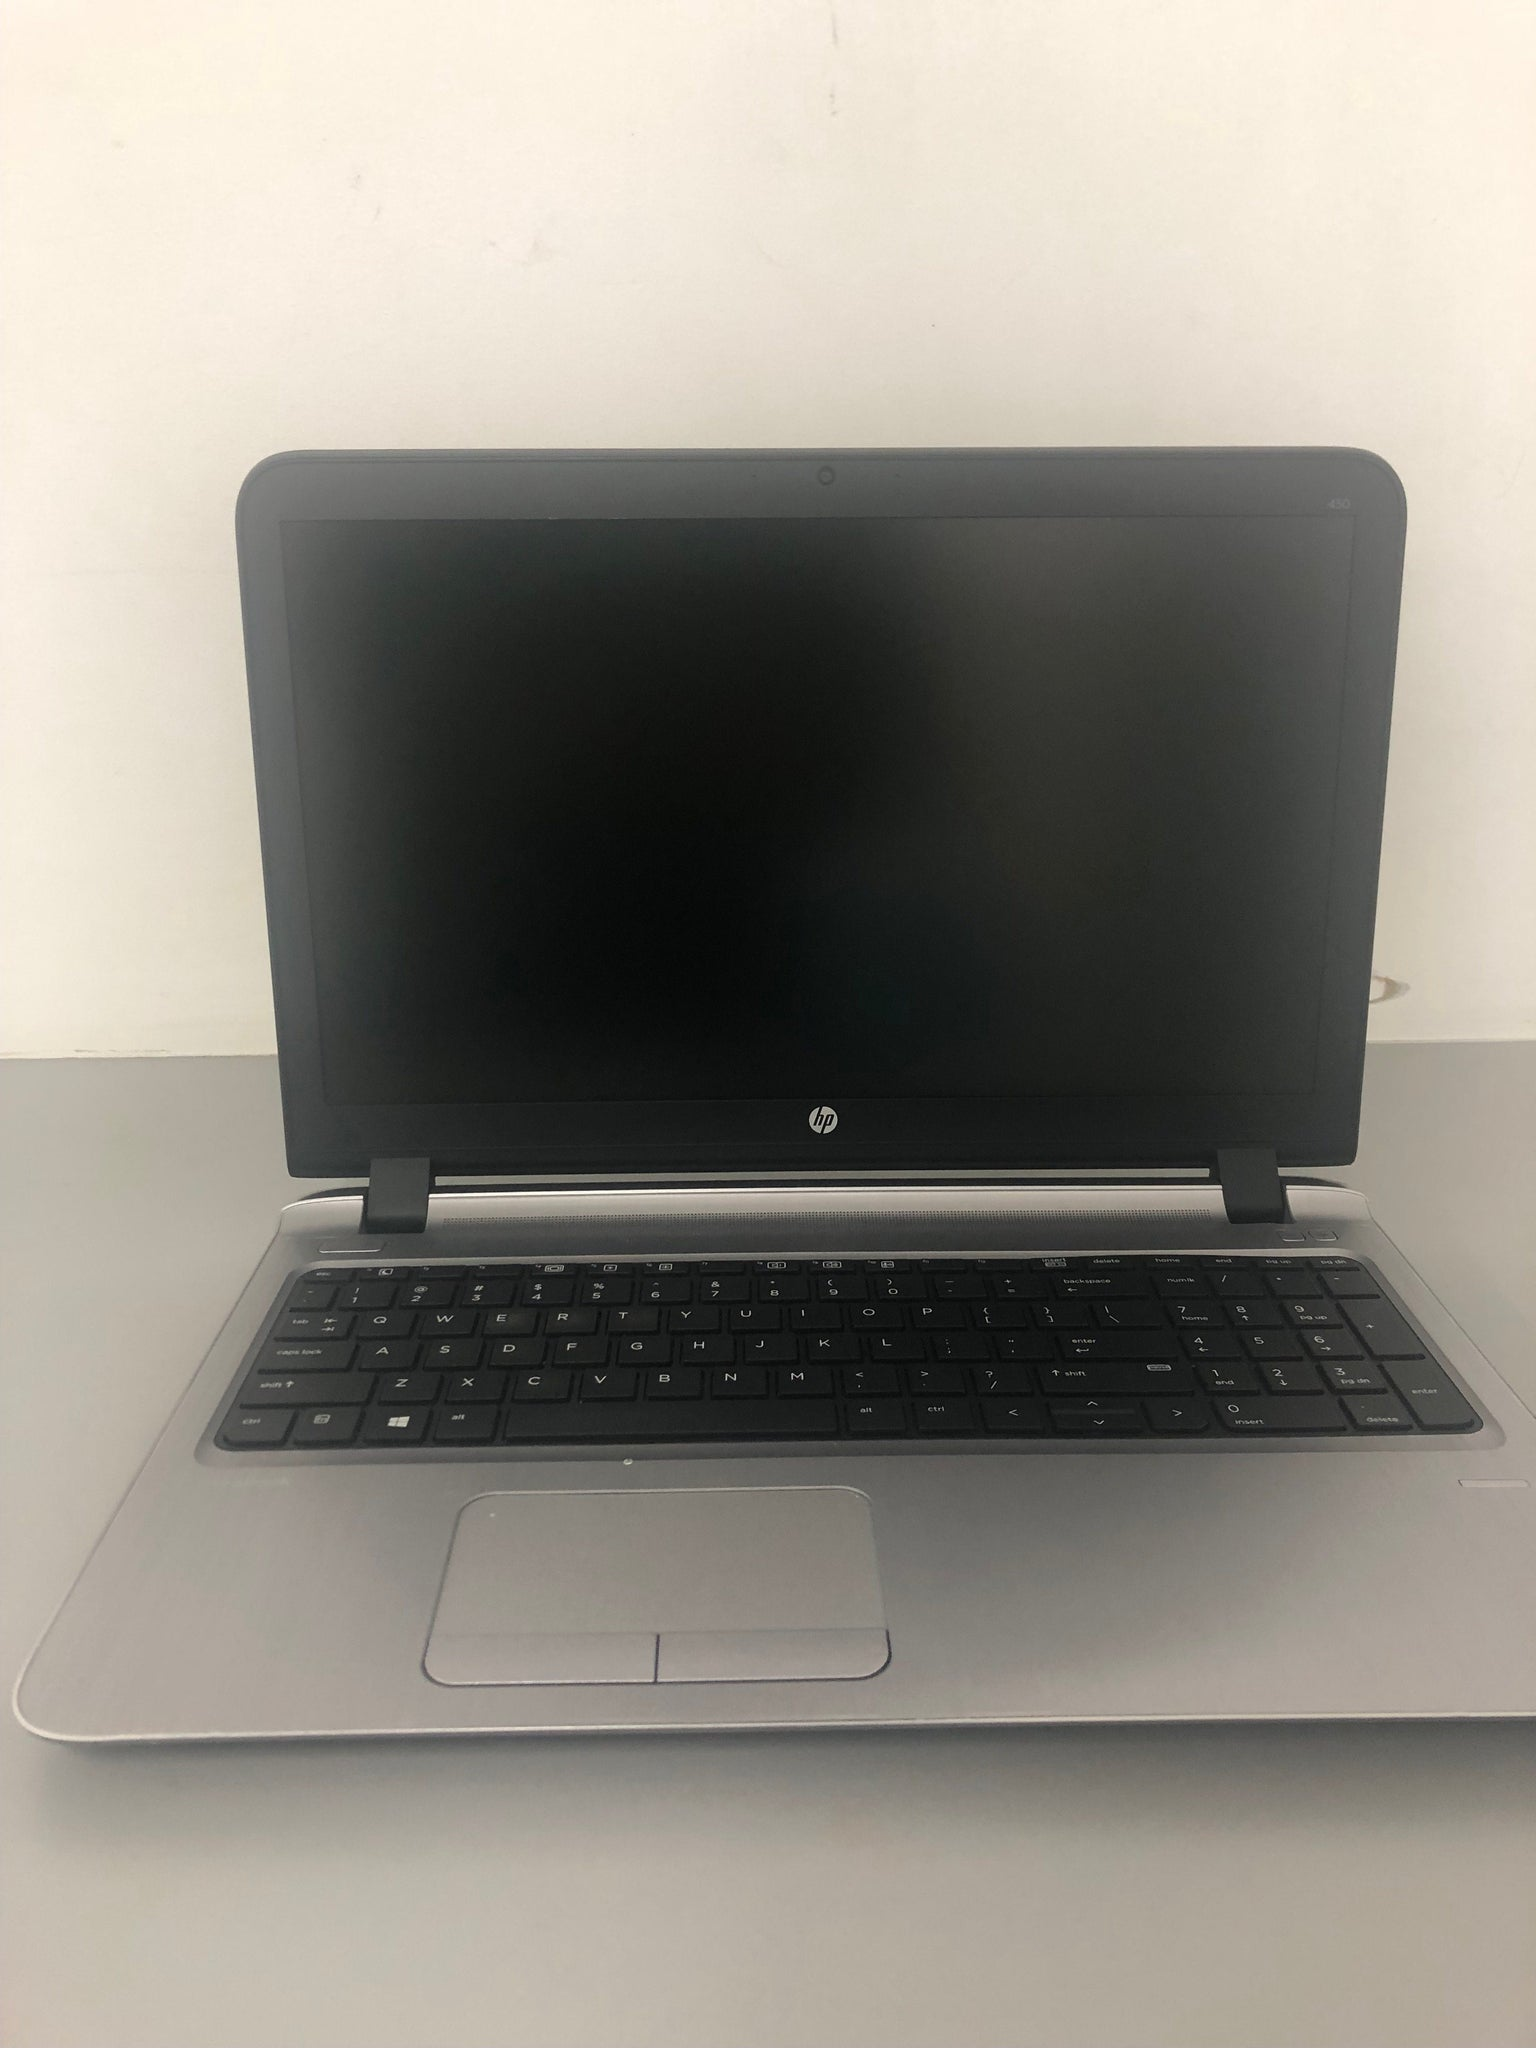 "B GRADE-HP ProBook 450 G3 Ex Lease Laptop  i5-6200U Turbo 3.2Ghz  8GB RAM 120GB SSD 15.6"" Windows 10 Home HDMi(screen blemish)"